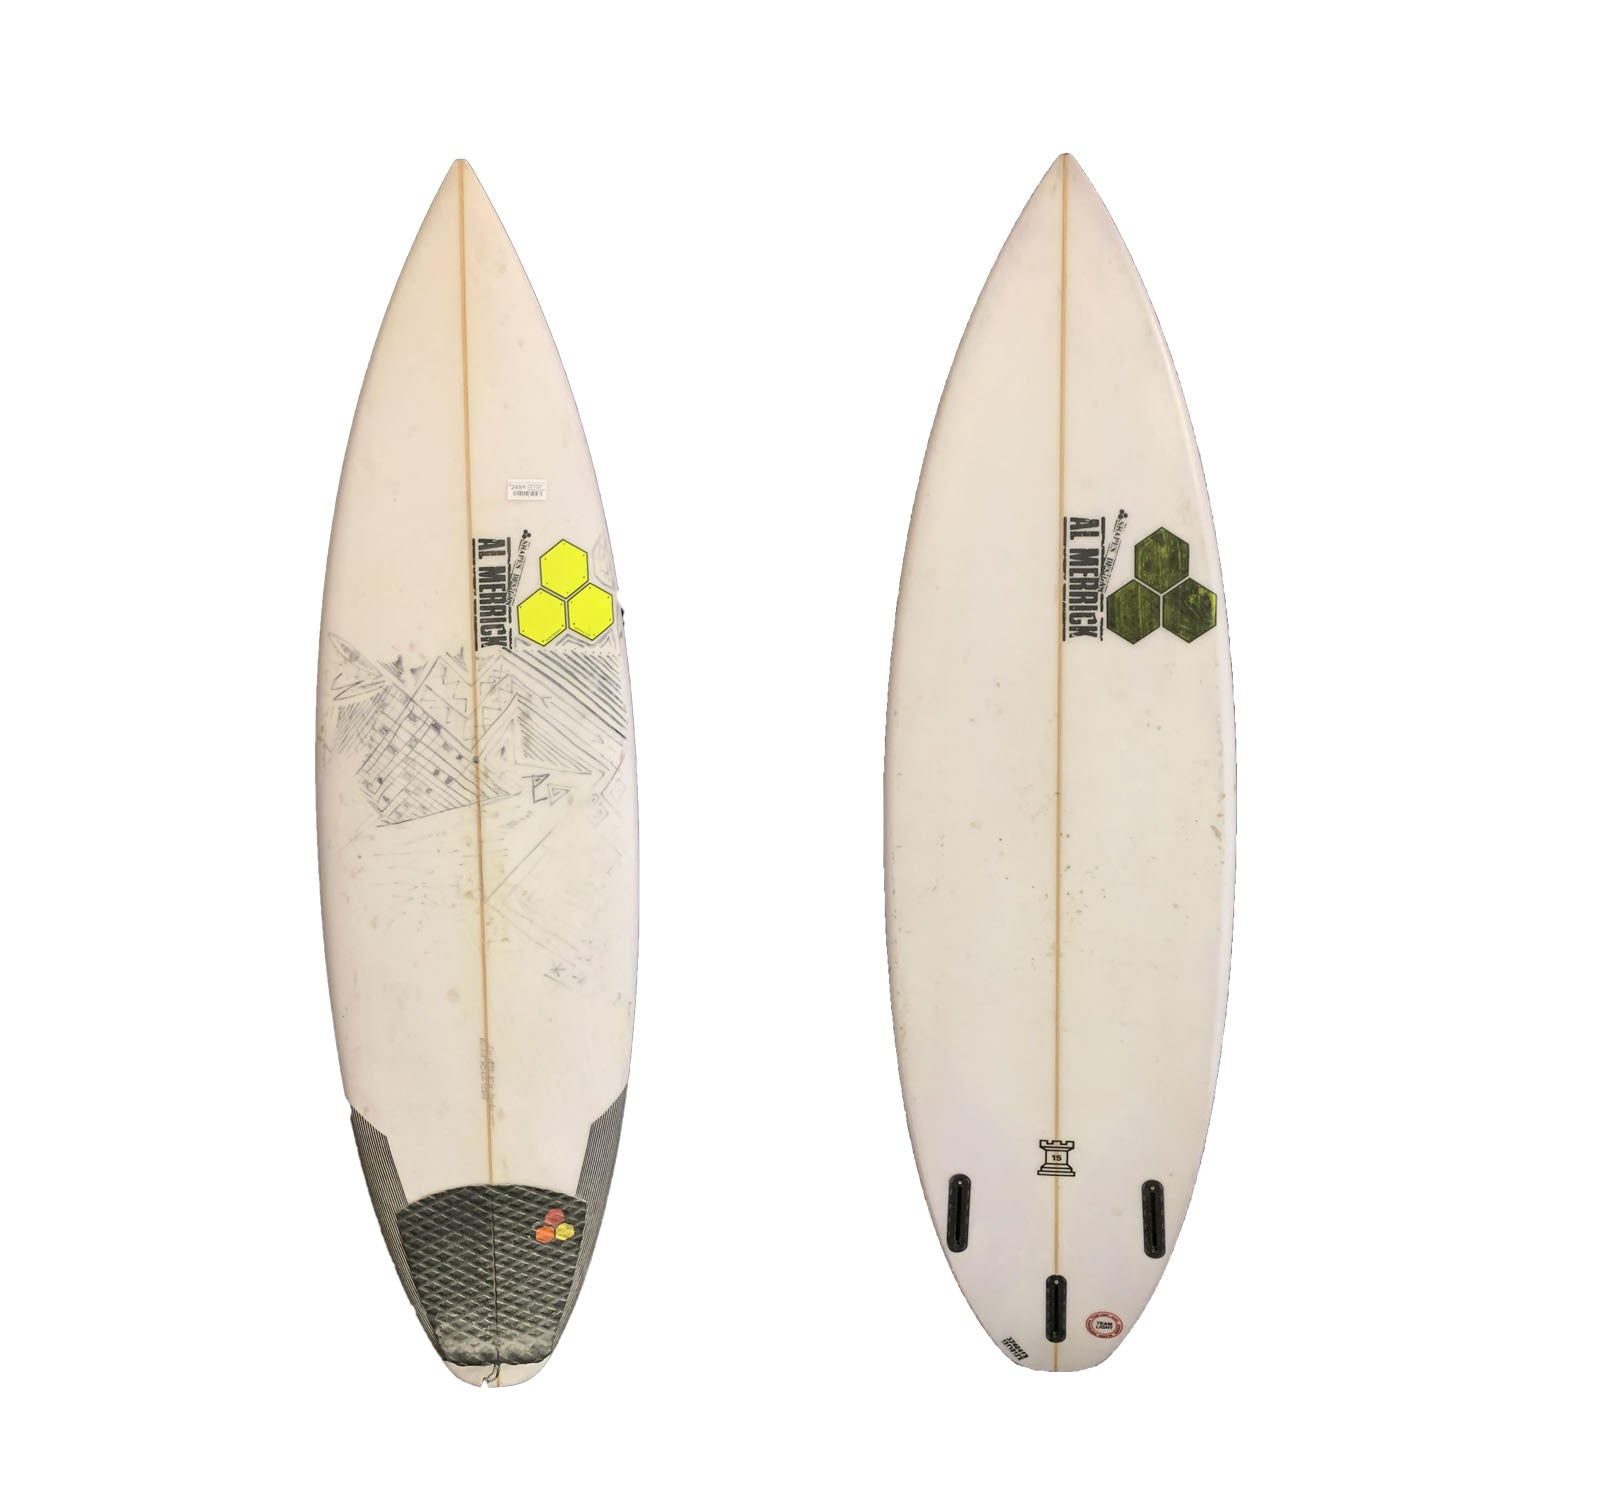 Channel Islands Rook 15 5'10 x 18 5/8 x 2 7/16 Used Surfboard (Team Custom for Hanko)